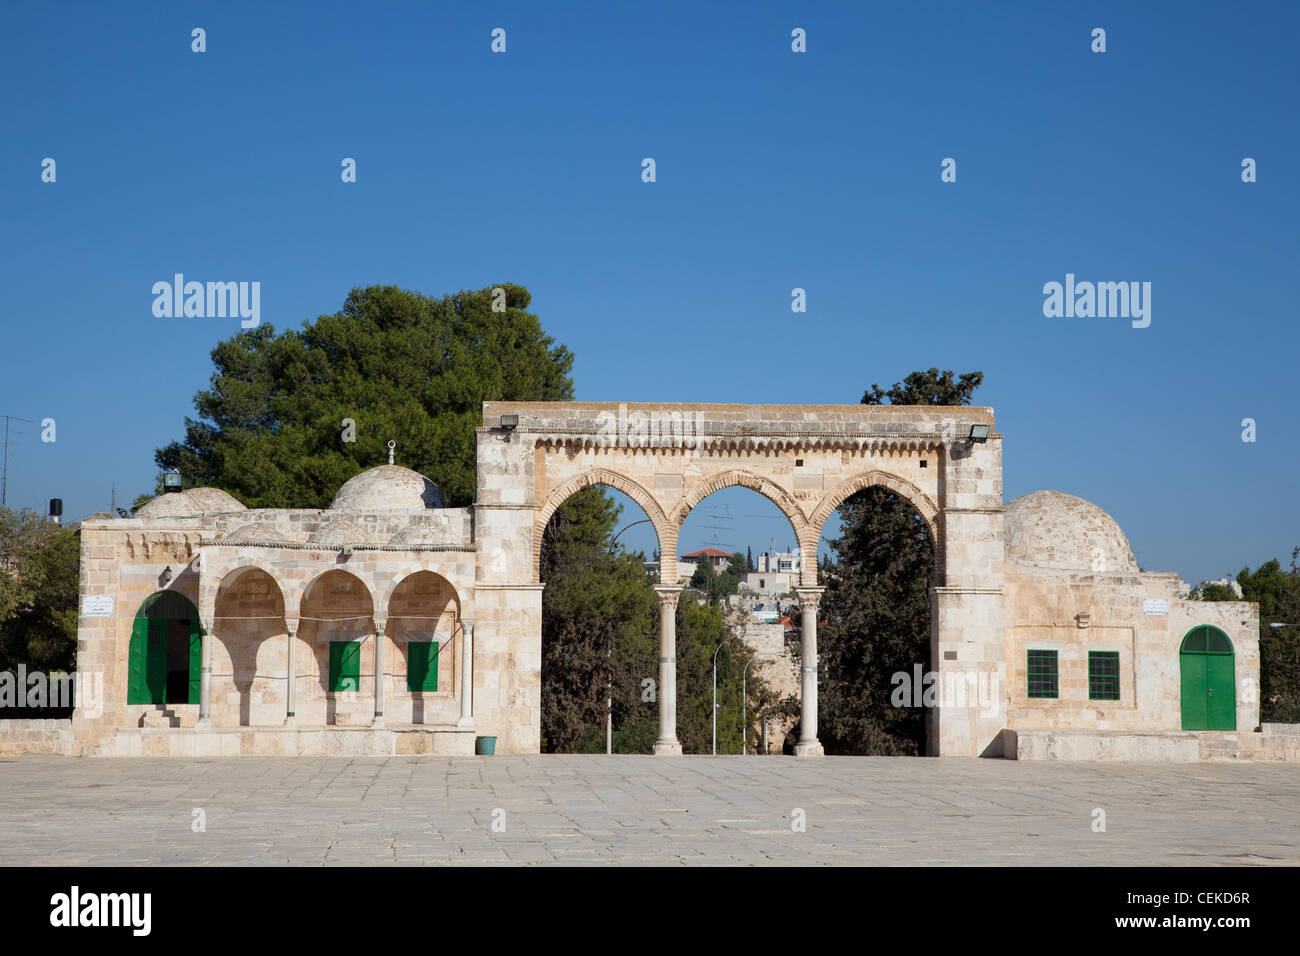 This arcade on Temple Mount built in Mamluk period in 1321 three arches supported two earlier Byzantine marble columns - Stock Image